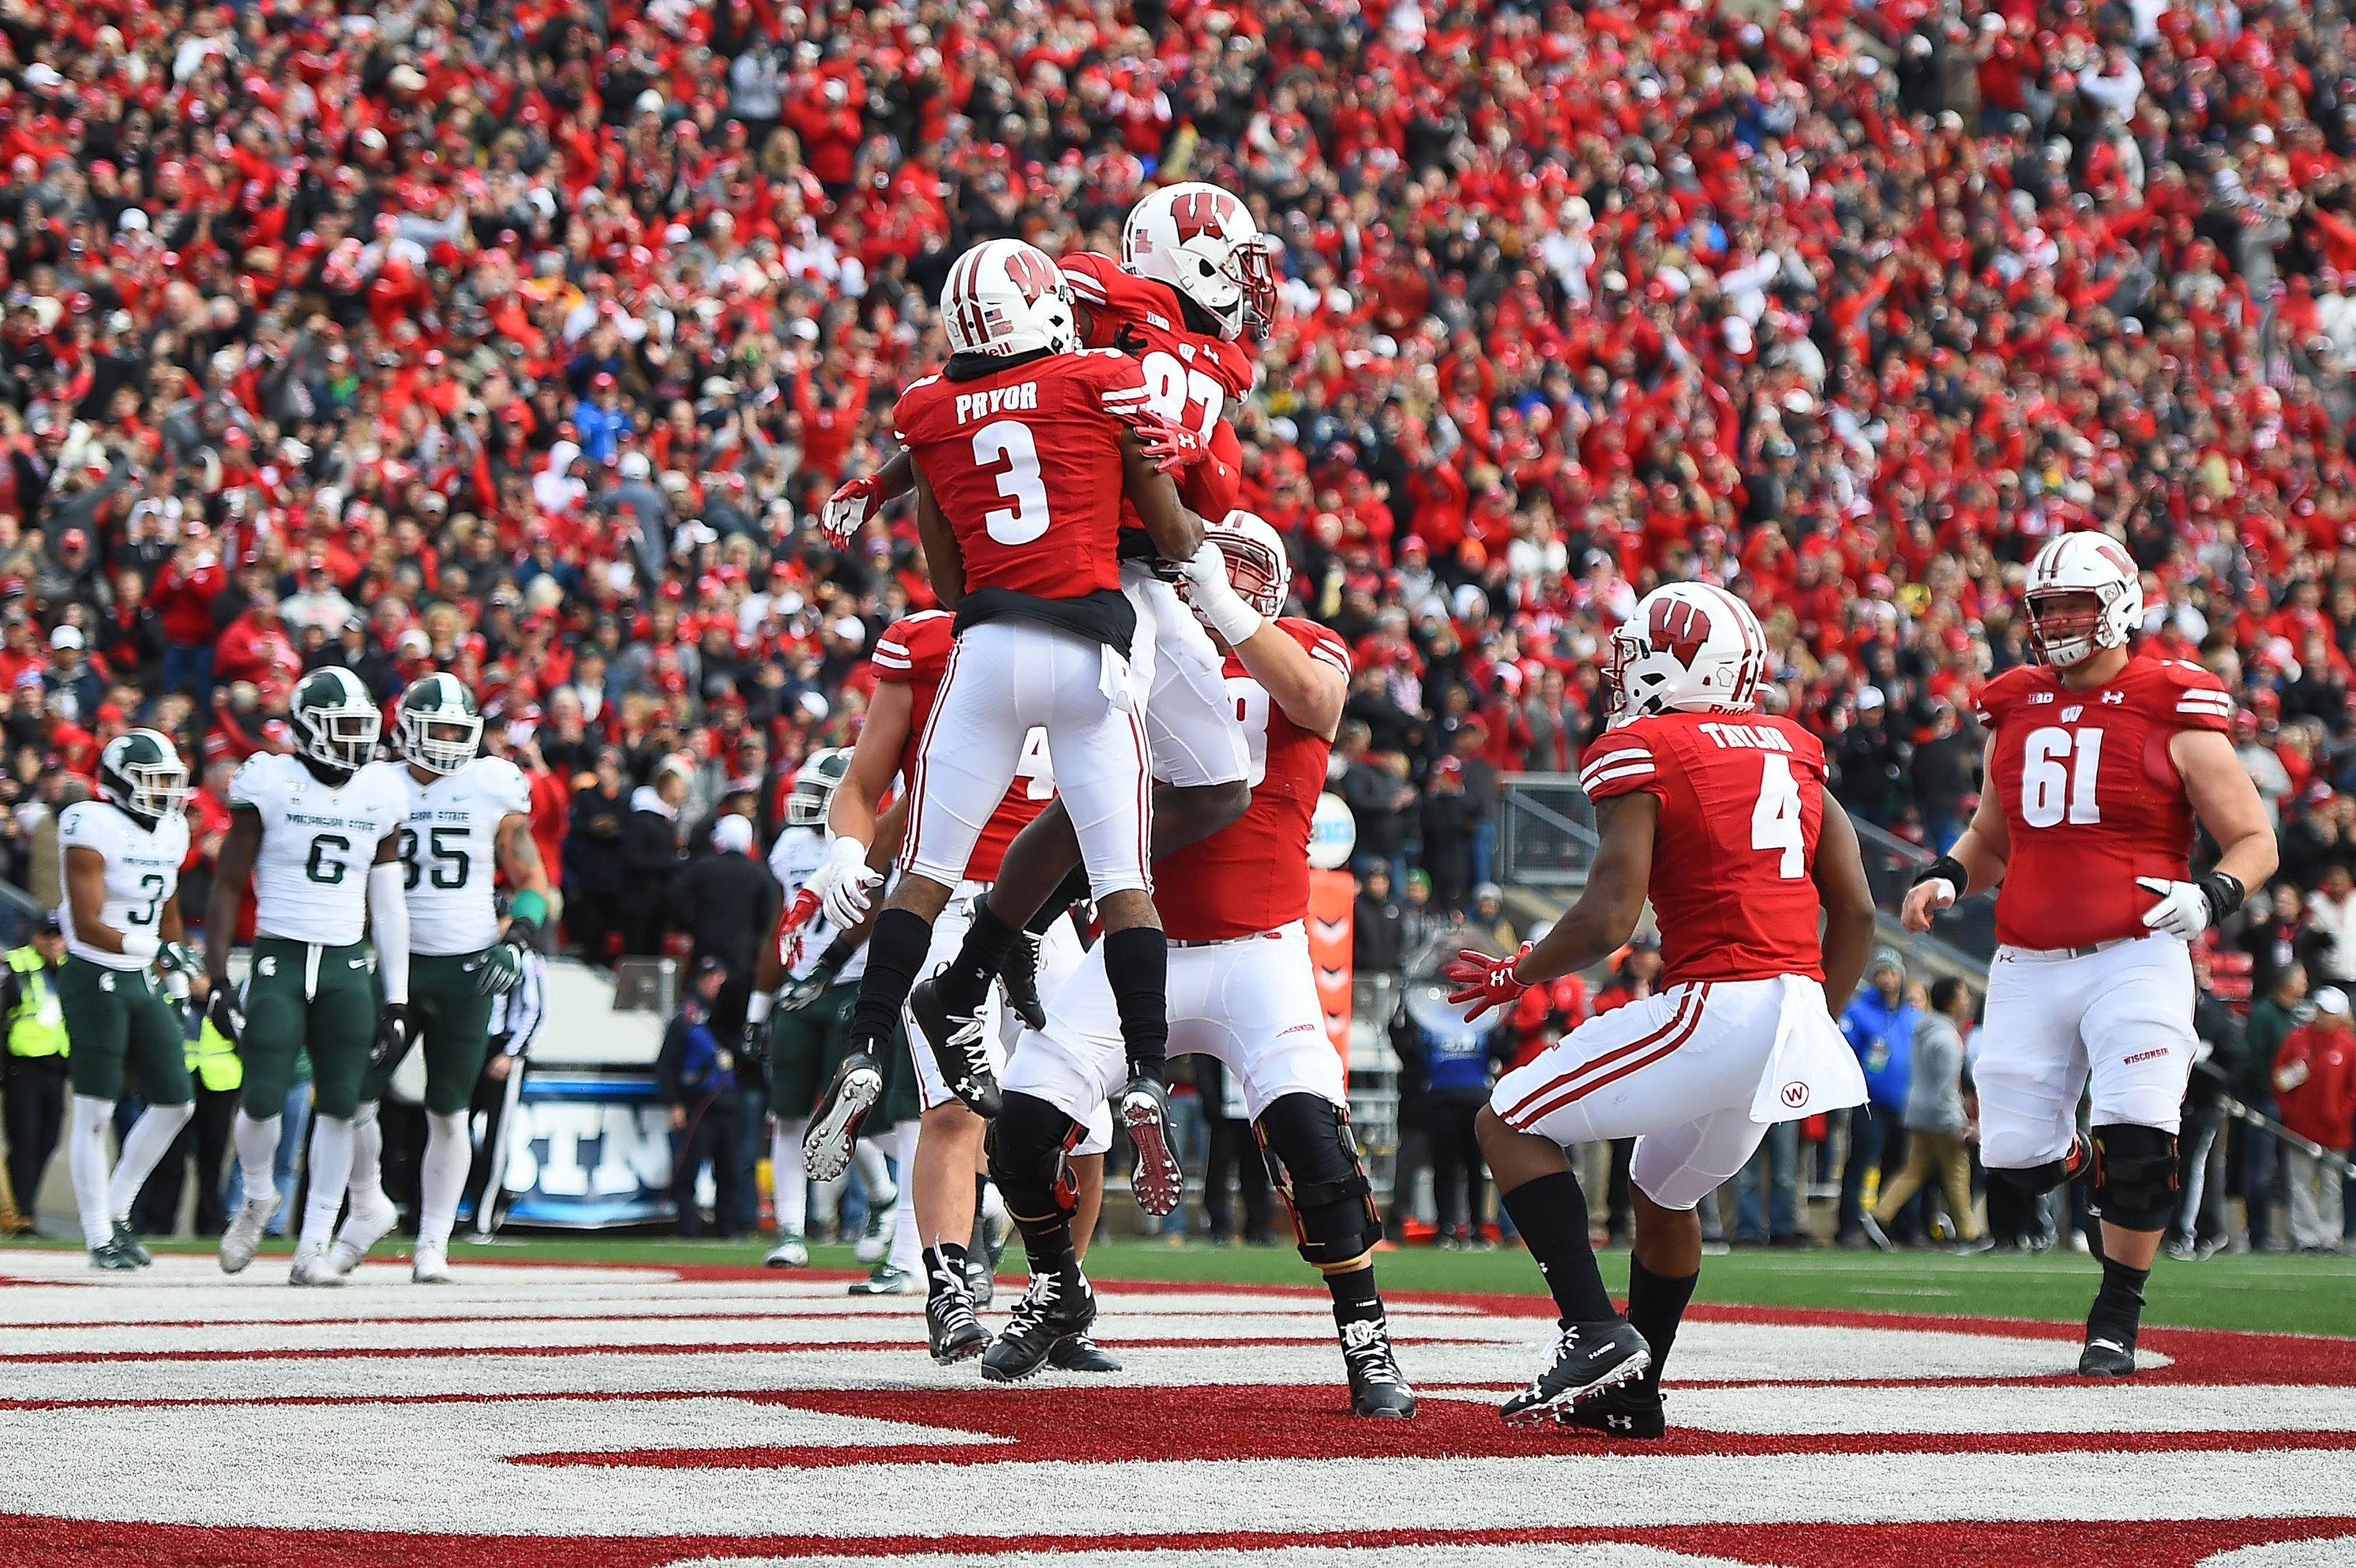 Wisconsin Football: Badgers must avoid 'trap game' mindset ...